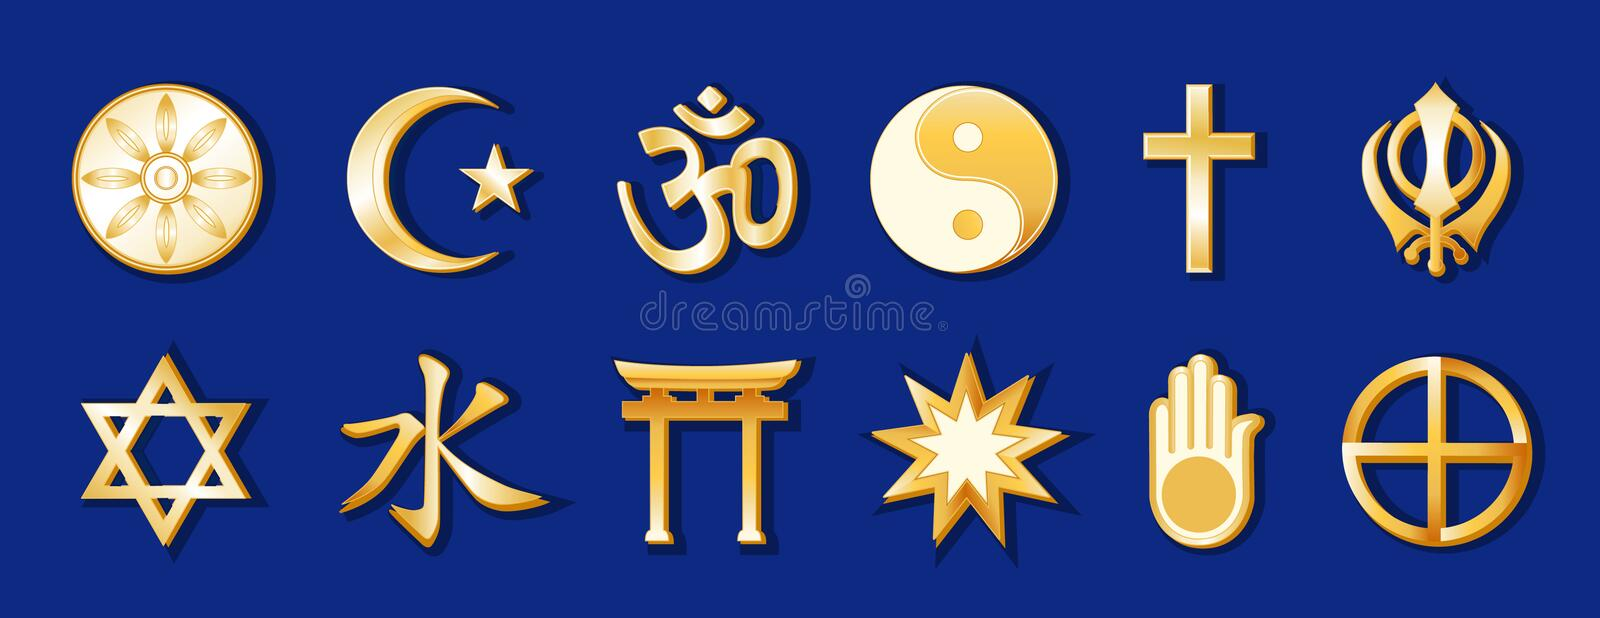 World Religions, Gold on Royal Blue